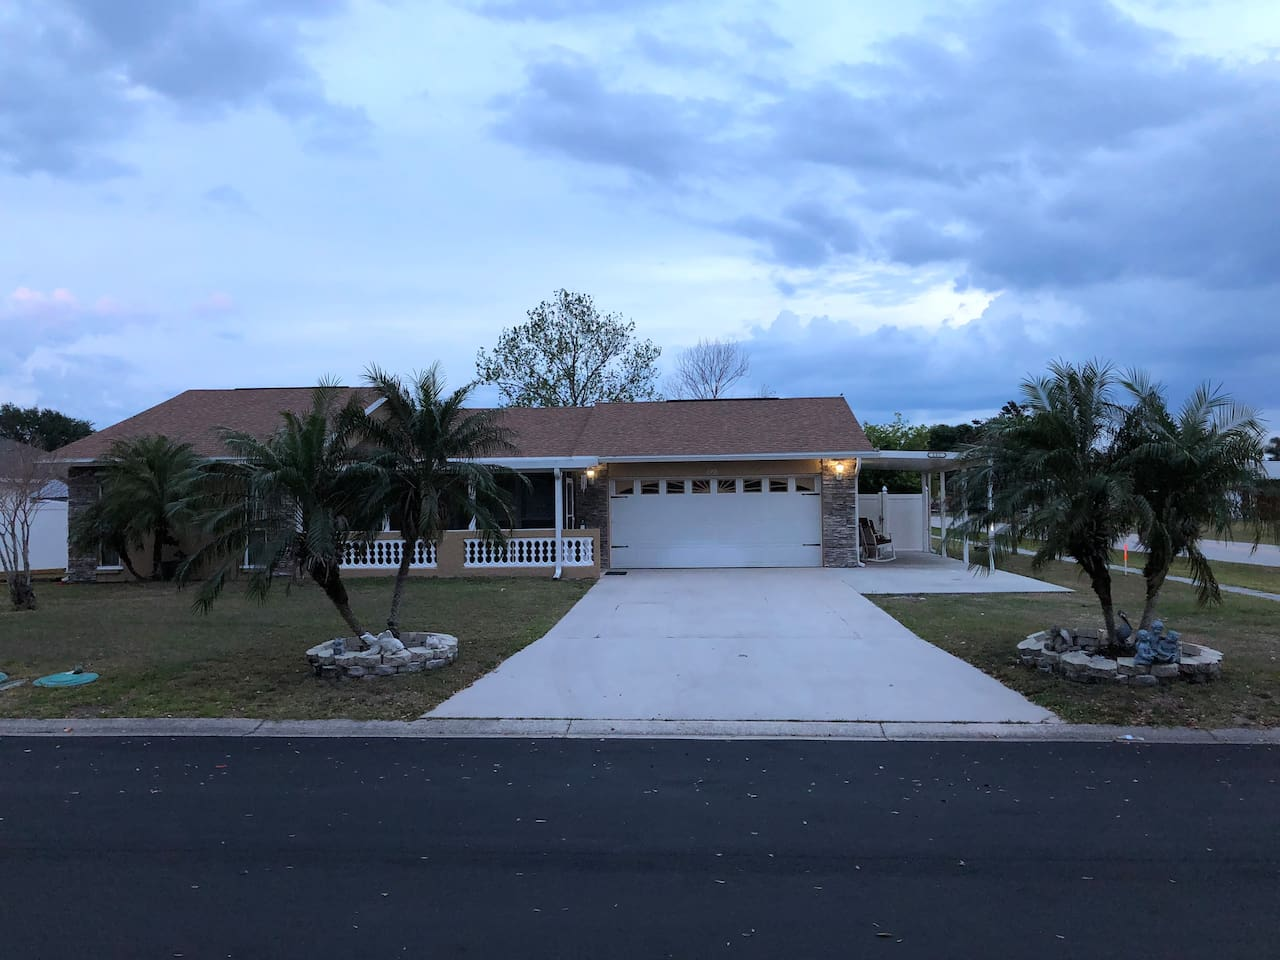 Front of the house. Parking space on the right hand side